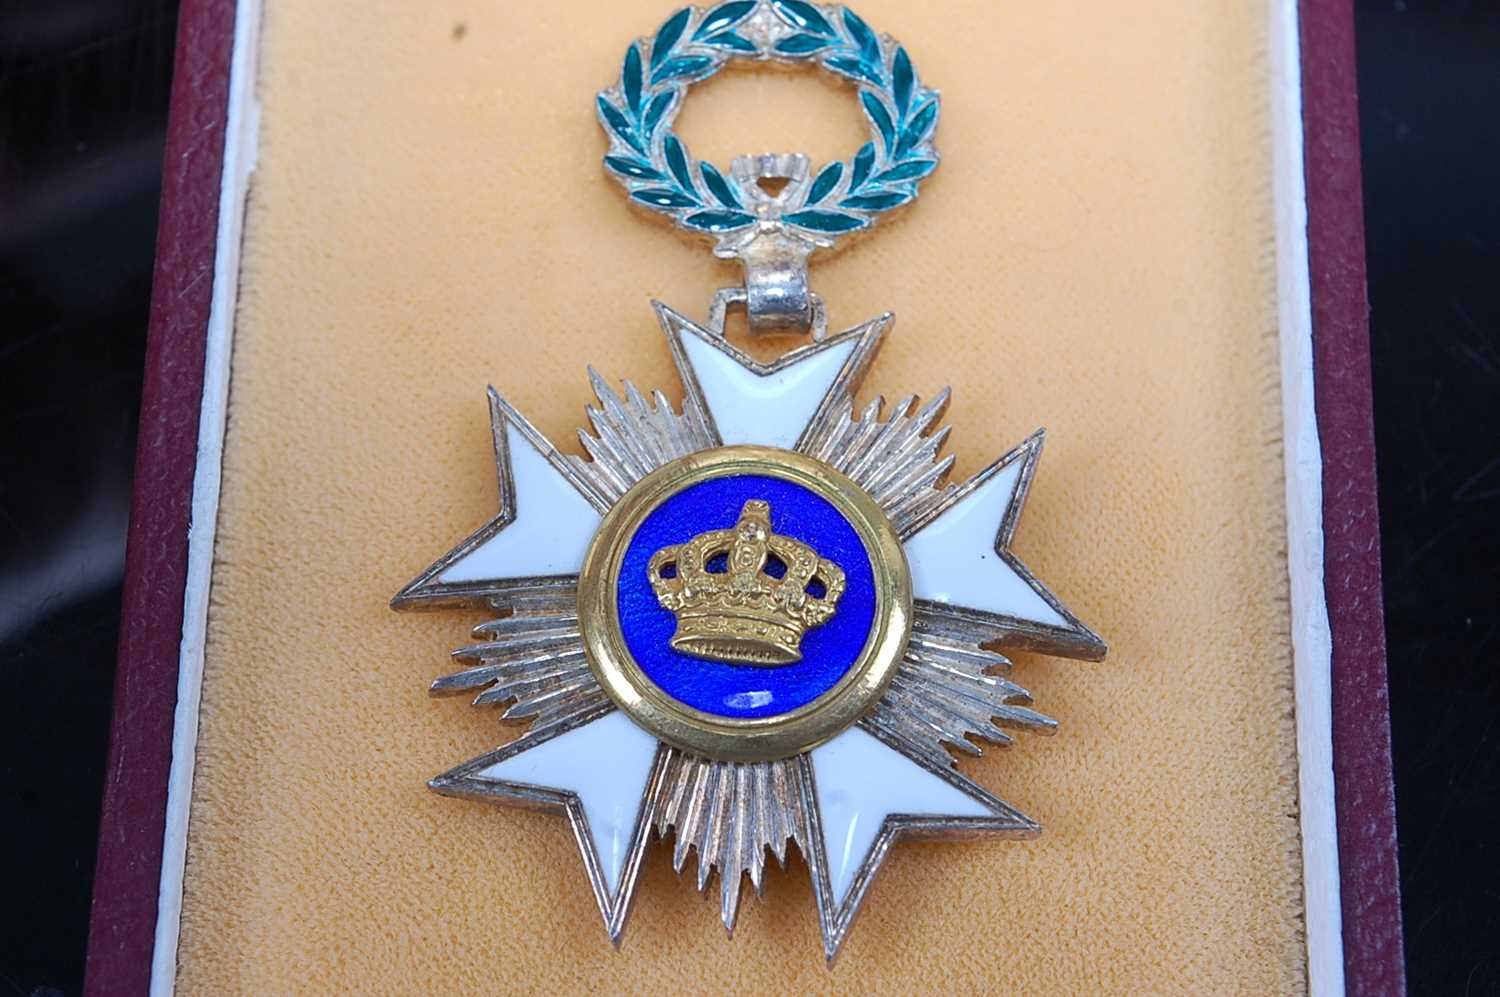 An Order of Merit of the Italian Republic, Knights 5th class breast badge, together with the - Image 3 of 6